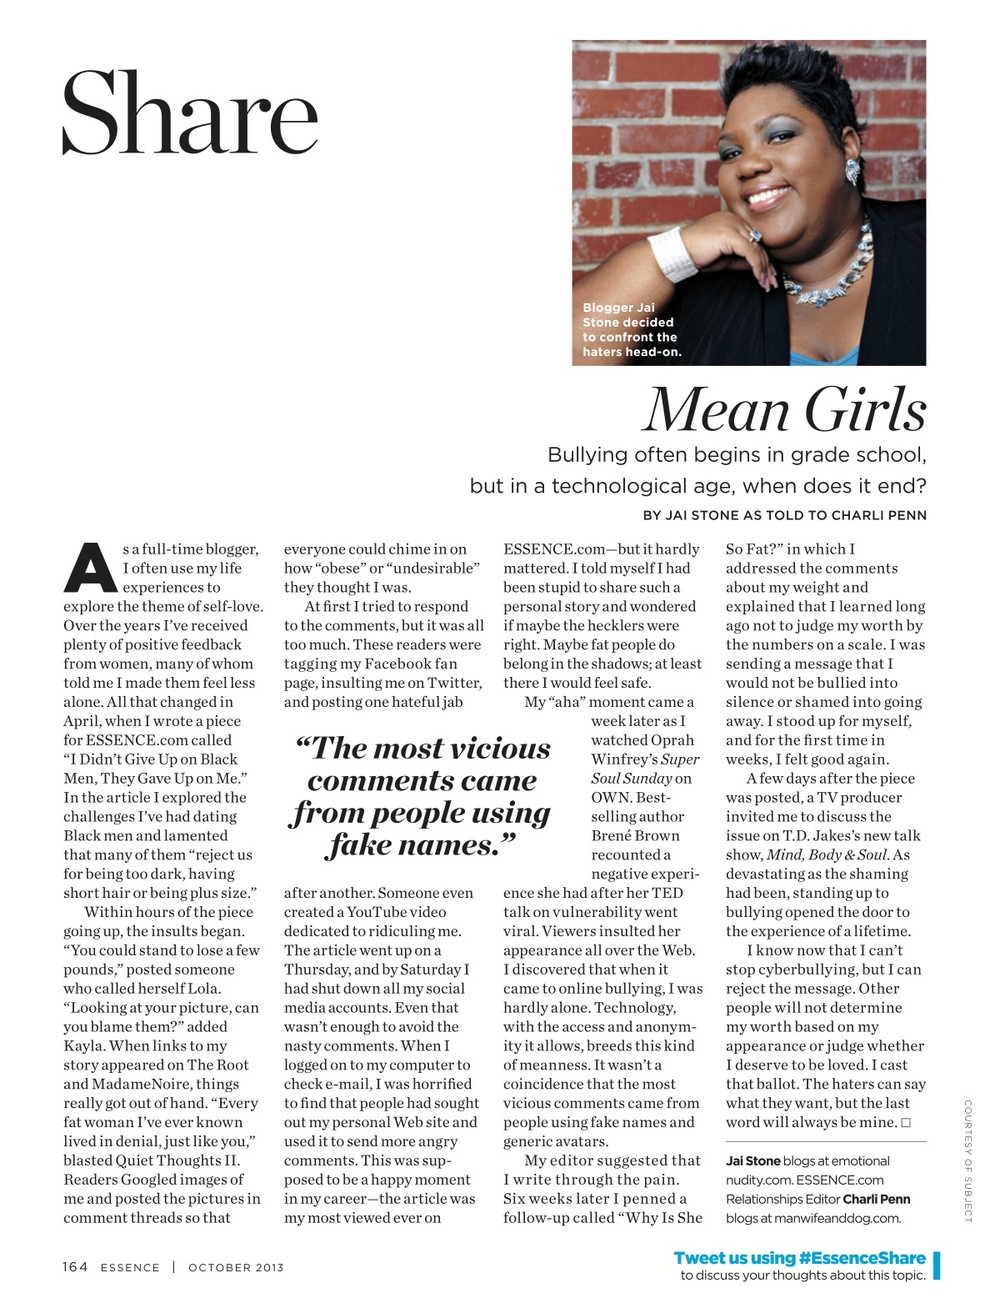 Mean Girls, ESSENCE Oct. 2013